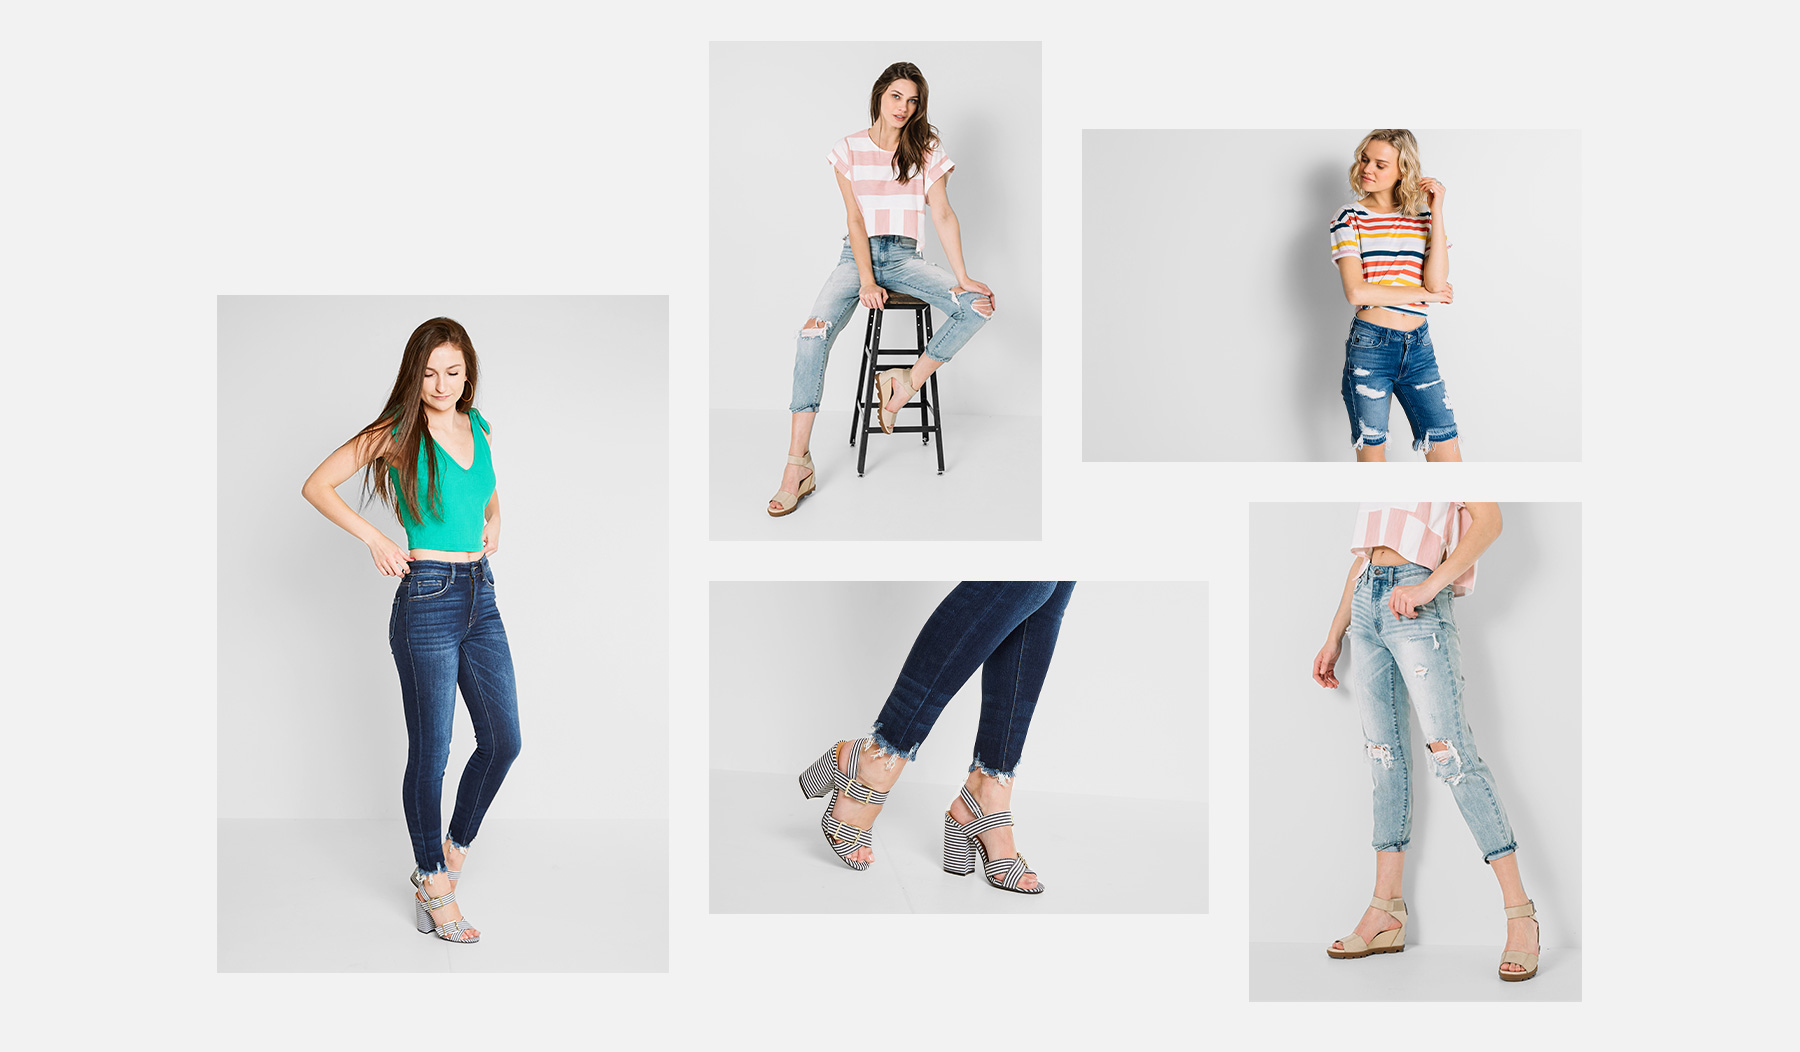 A collage of women's wearing different styles of denim